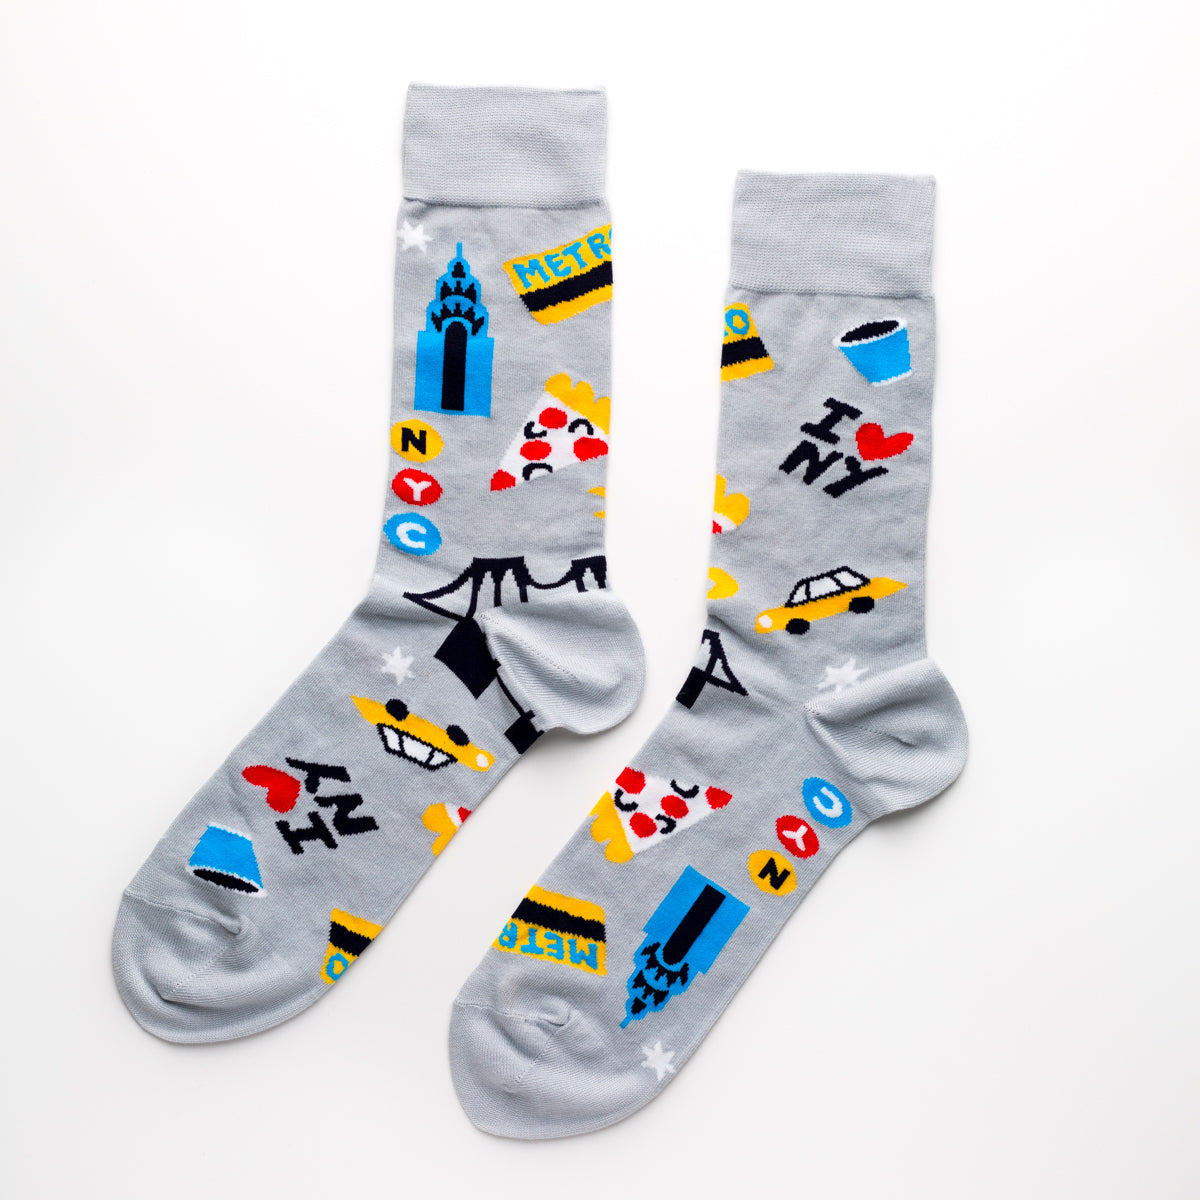 NYC Crew Socks - Men's